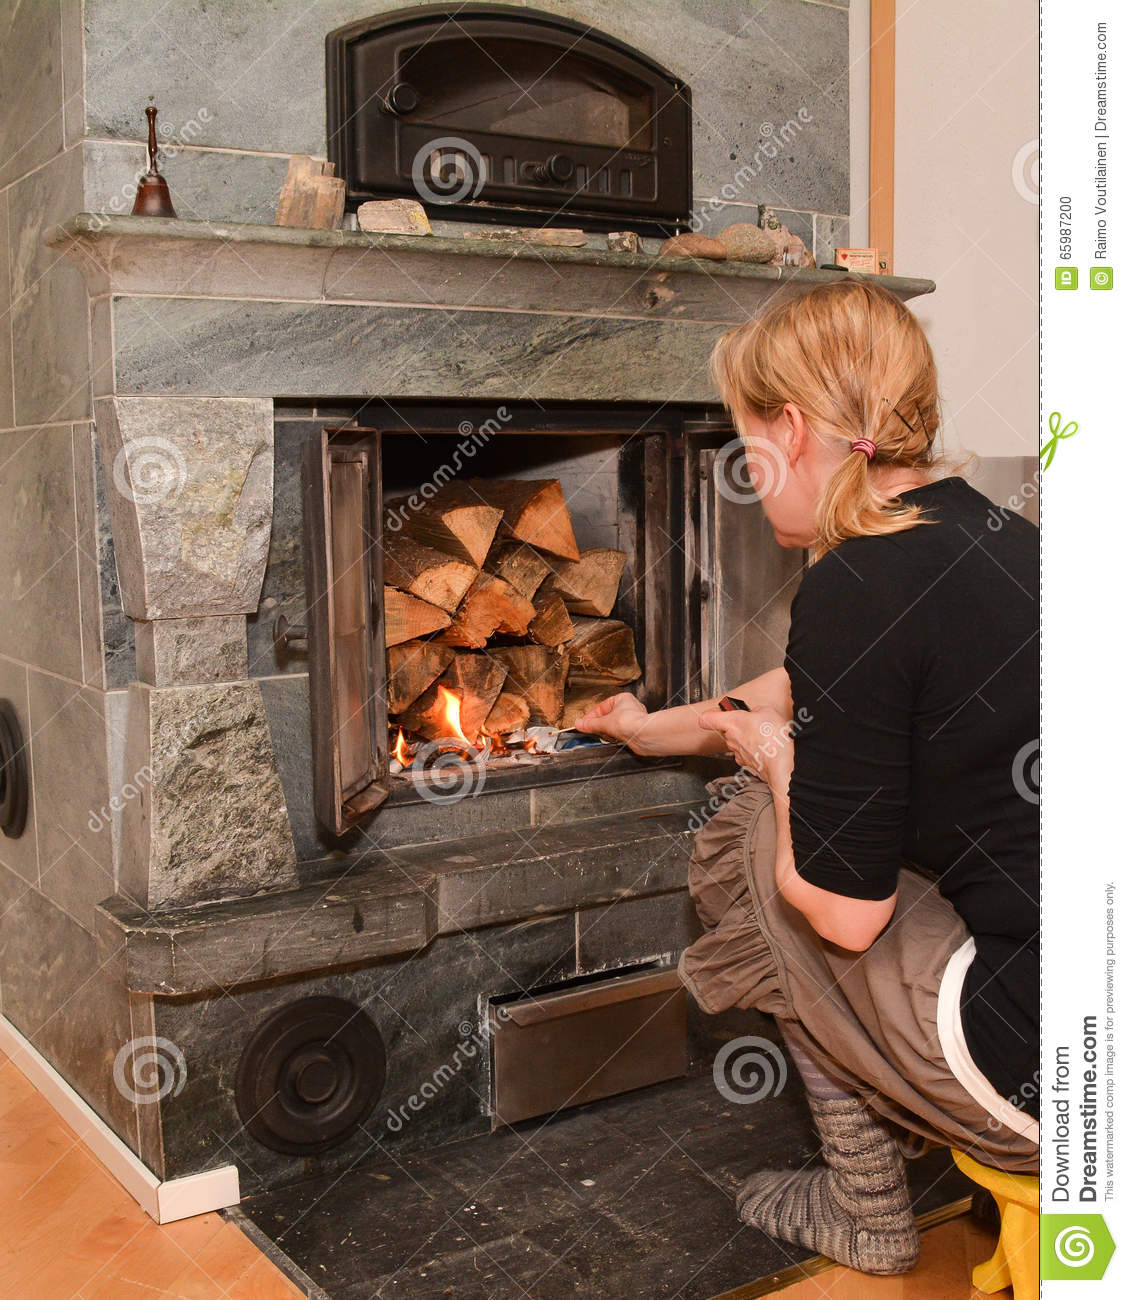 Woman Making Fire On Fireplace Stock Photo Image Of Cheerful